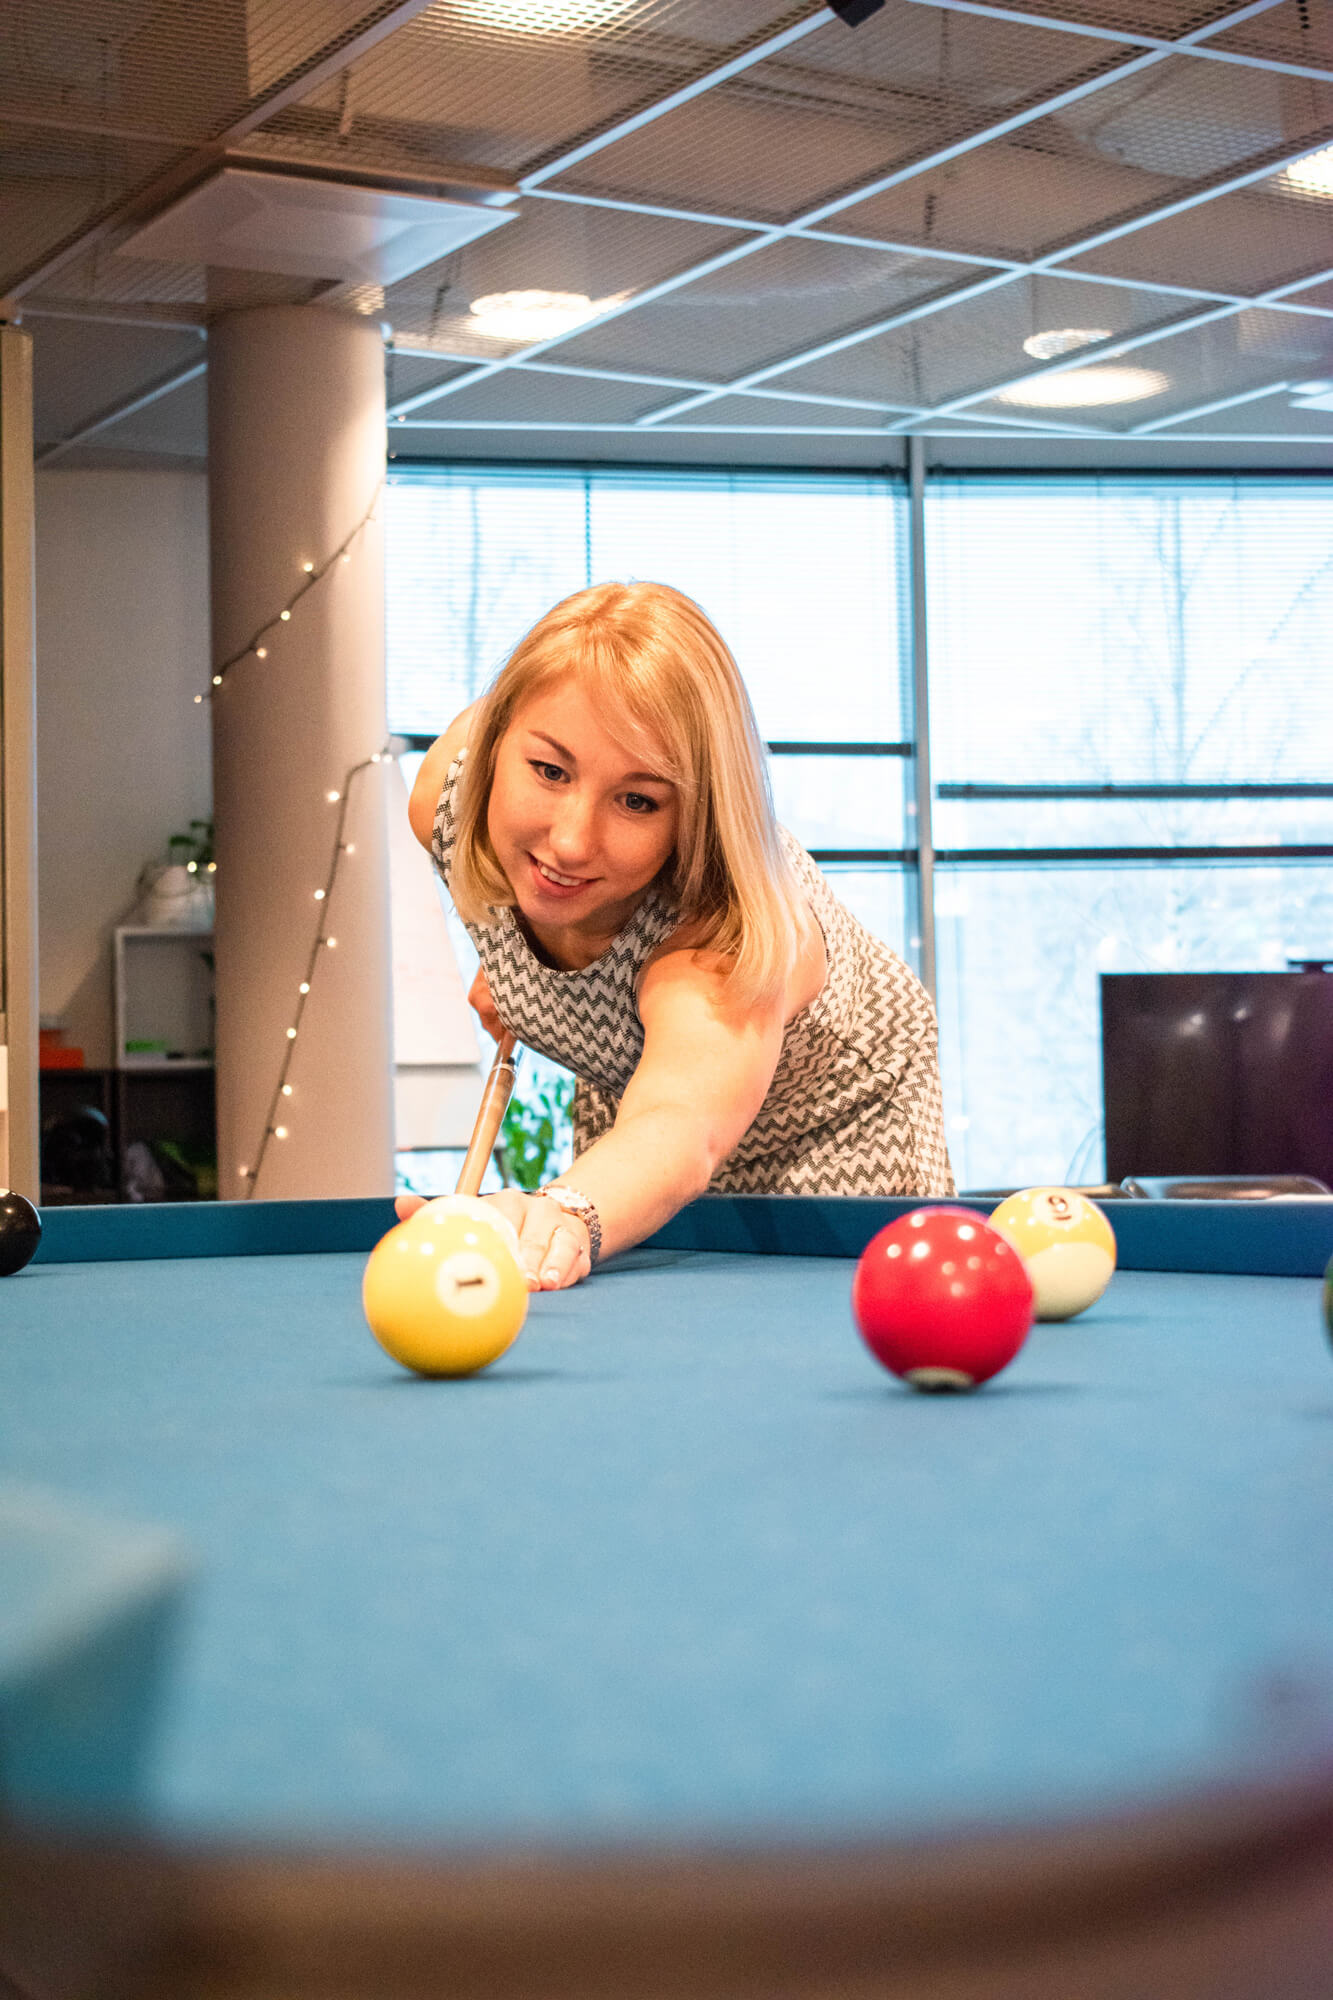 Administrative Coordinator Valeria playing pool